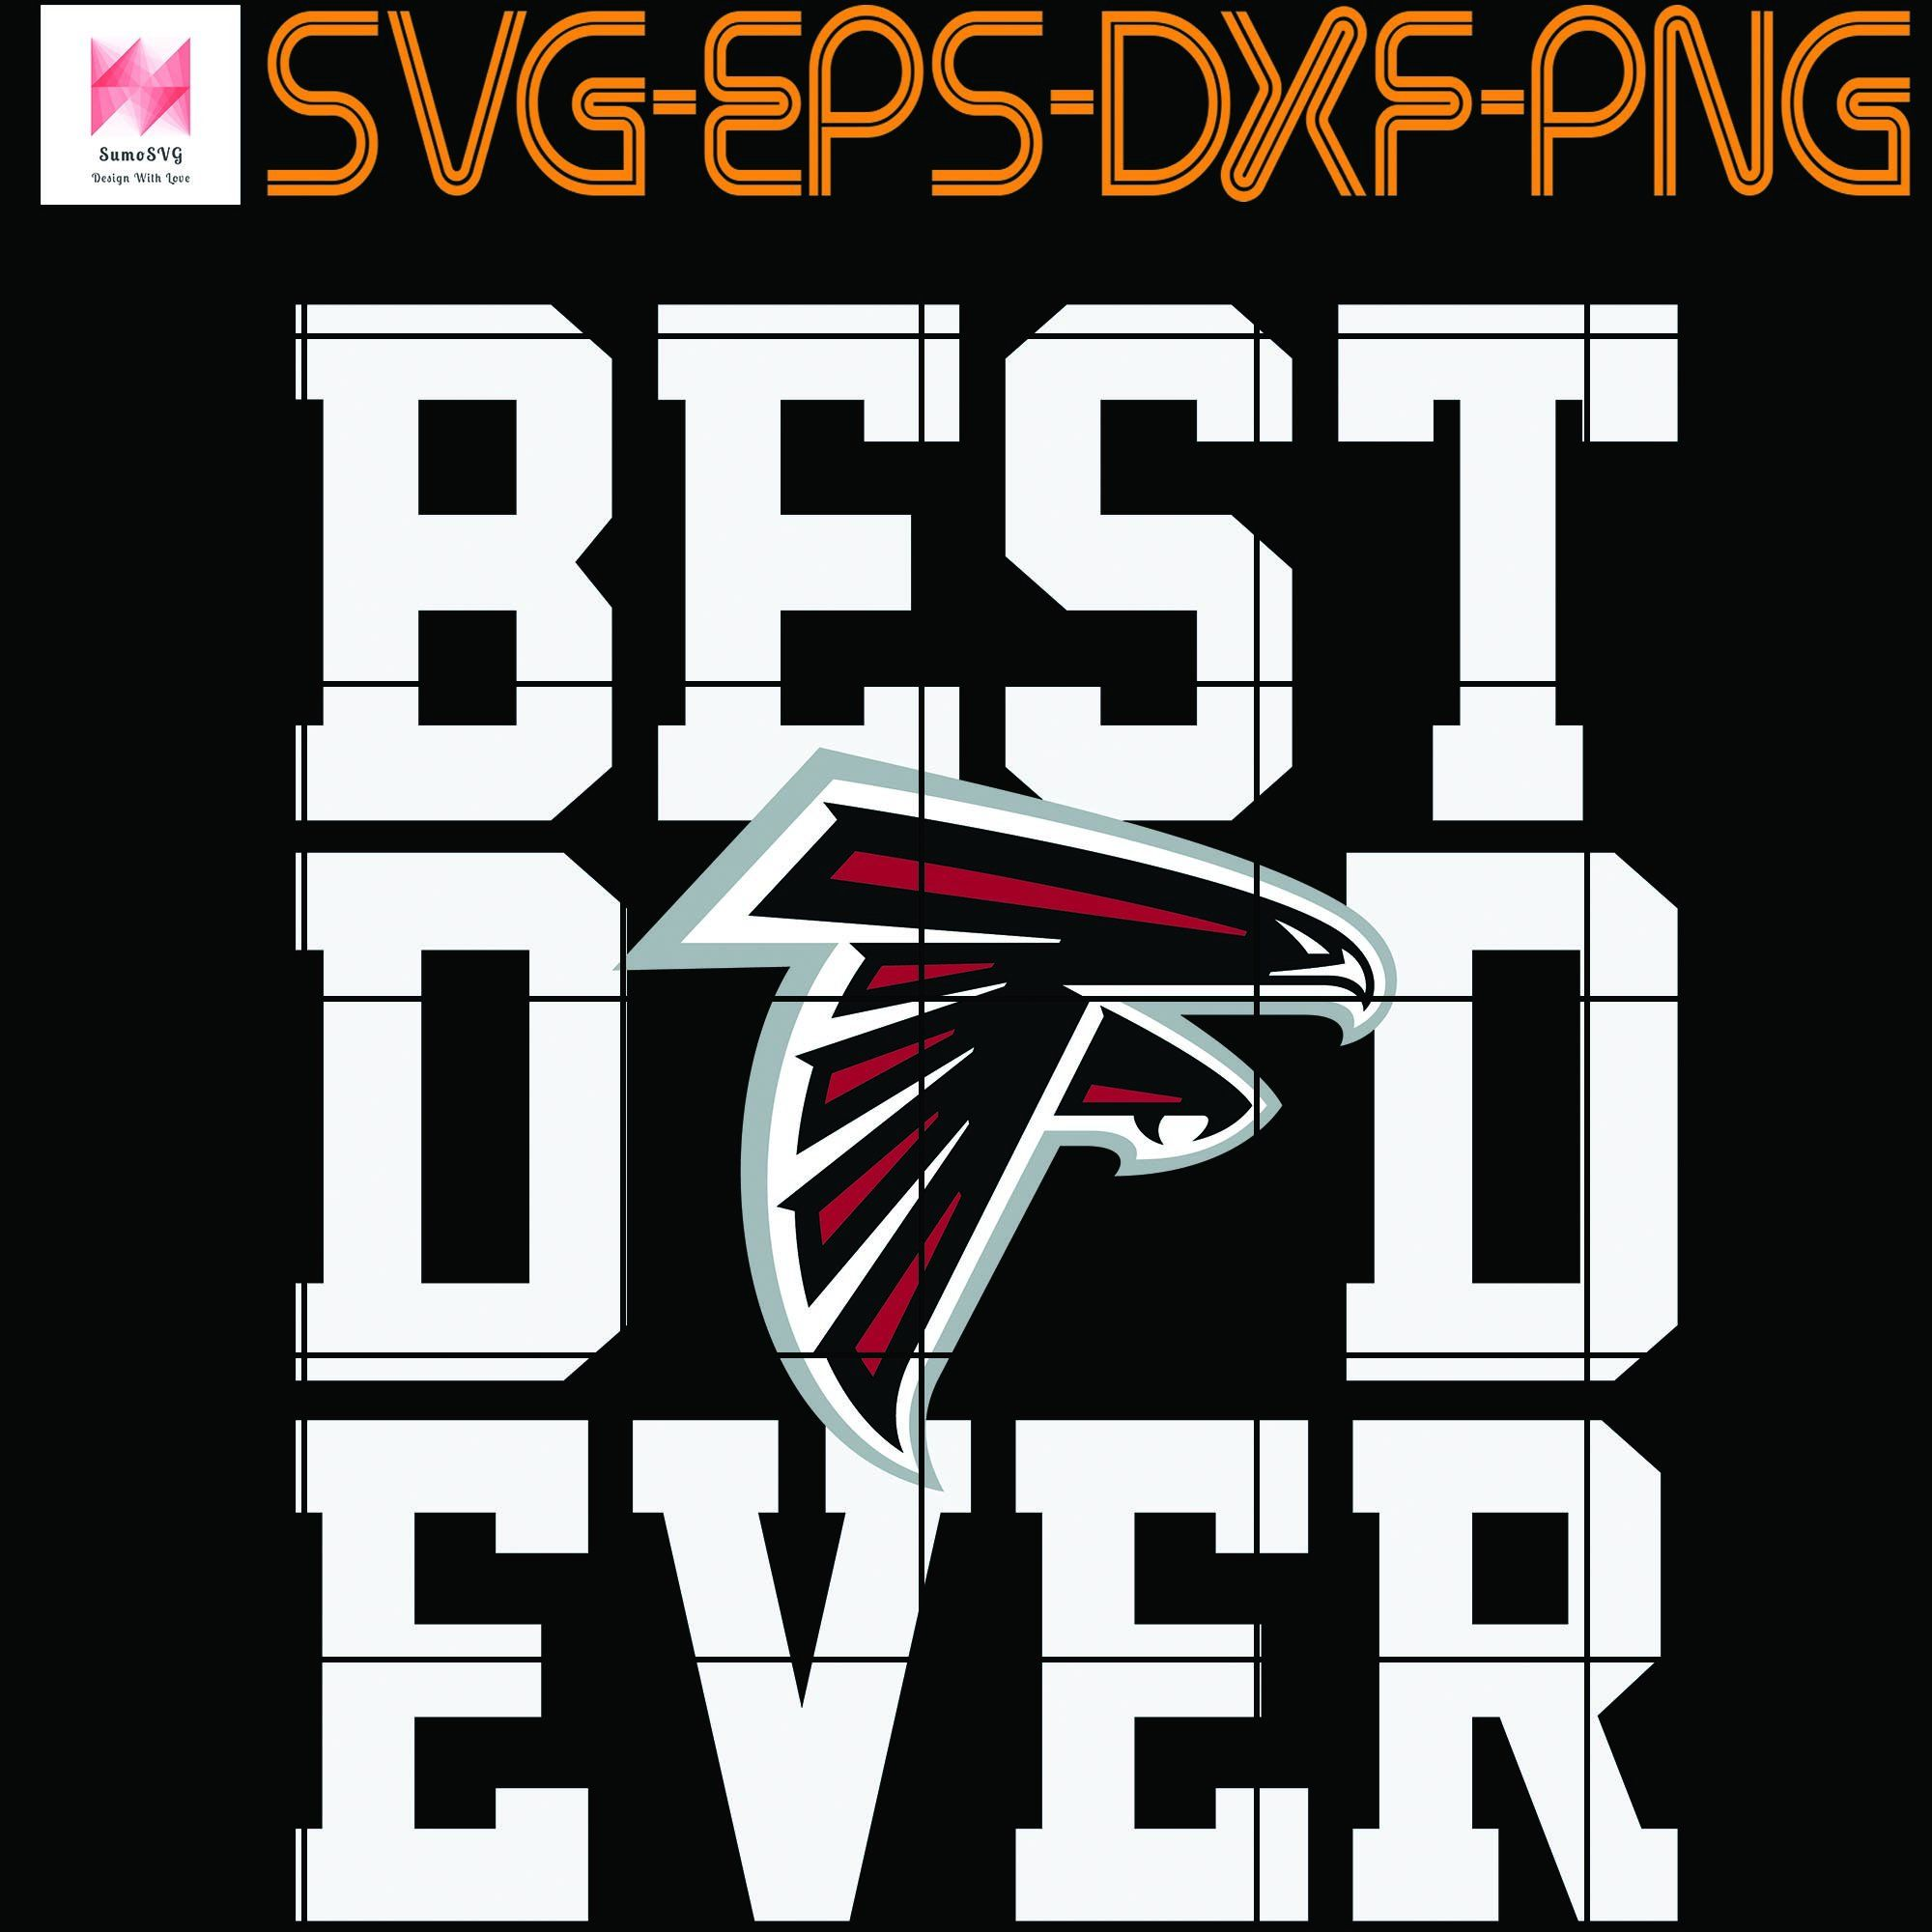 Best Dad Ever Atlanta Falcons Svg Falcons Girl Svg Falcons Svg Falcons Boy Svg Nfl Svg Football Svg Falcons Mom Svg Dna Fueled By Haters Lip Skull In 2020